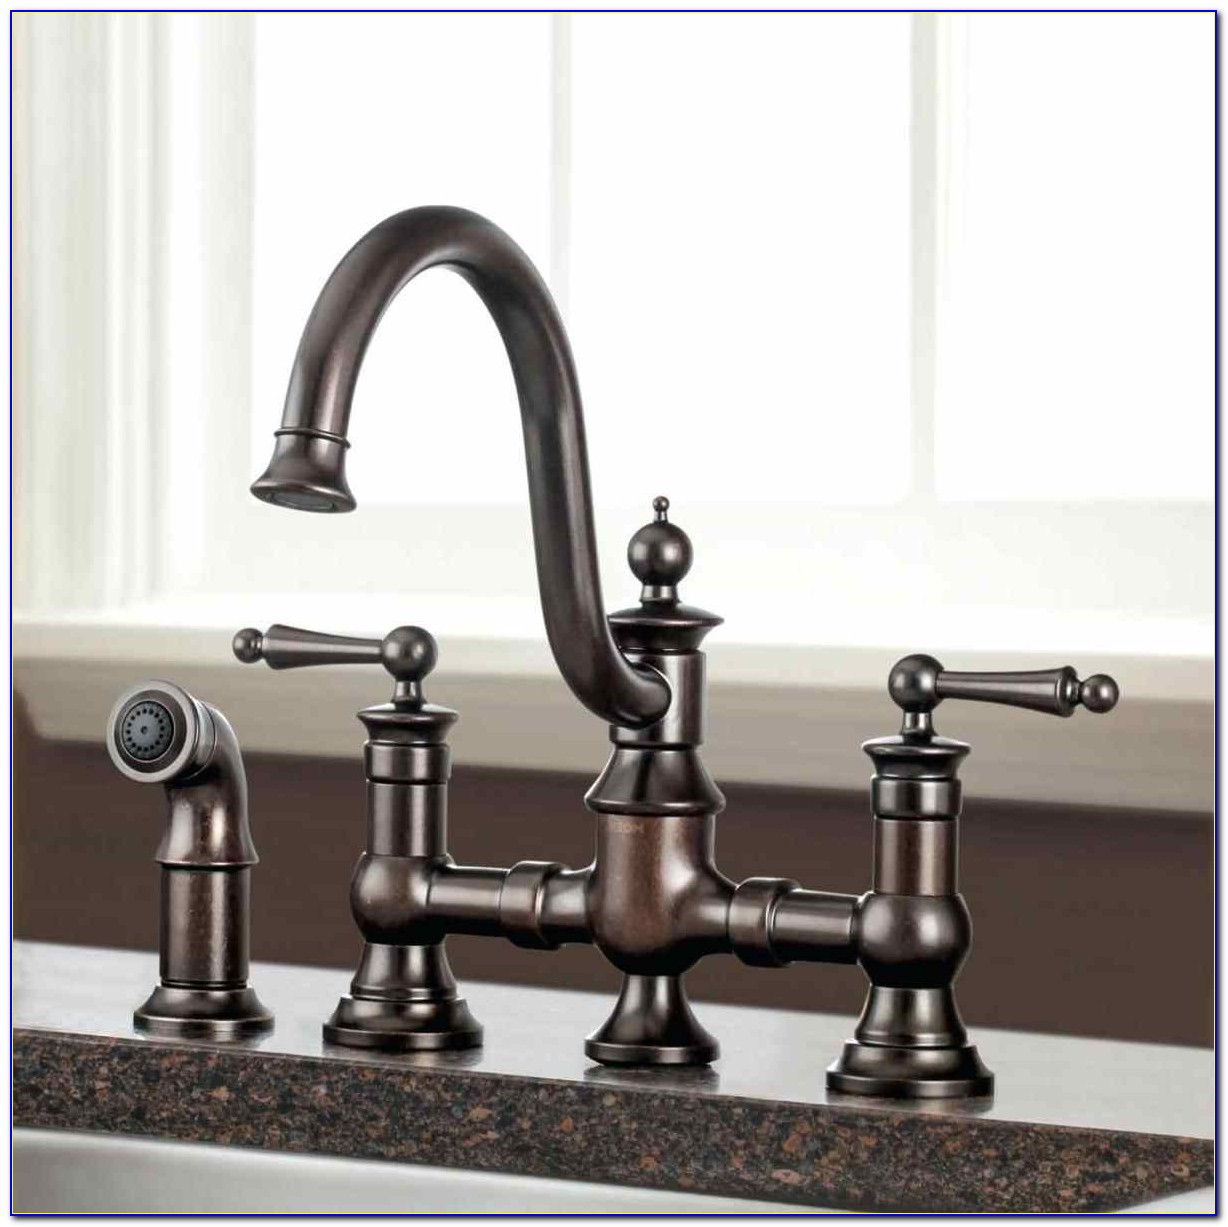 Pur Water Filter For Pull Out Faucet